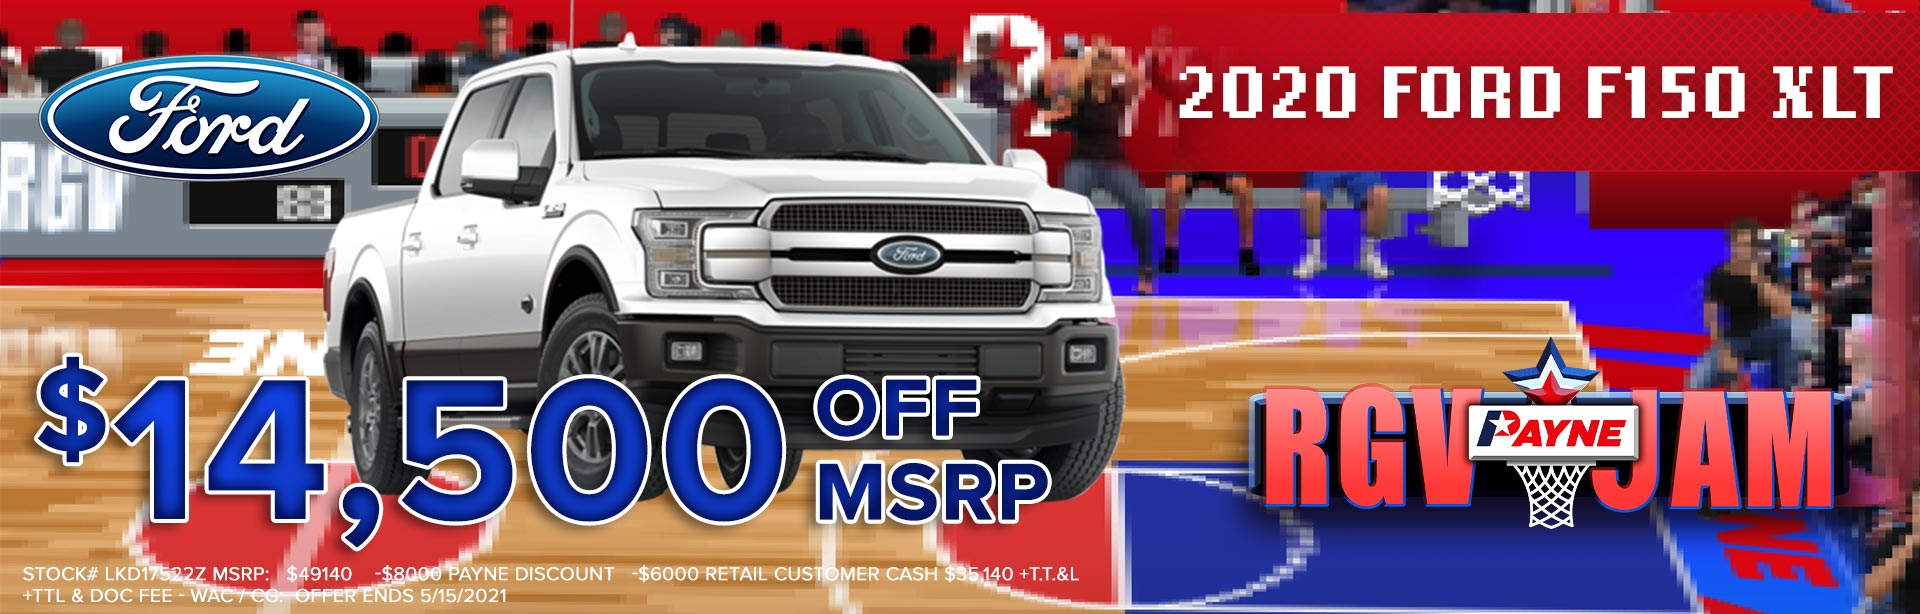 $14000 off MSRP on NEW 2020 Ford F-150